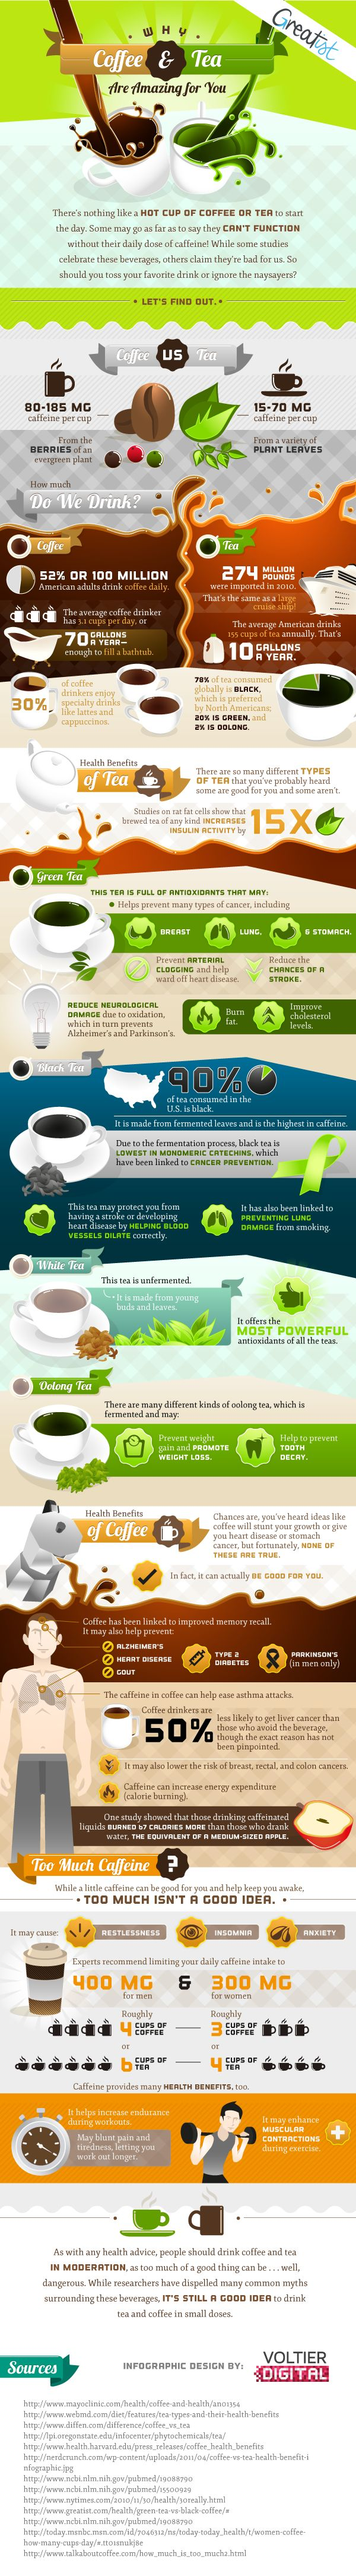 Happiness Is... Tea and Coffee!    Why Coffee and Tea Are Amazing For You